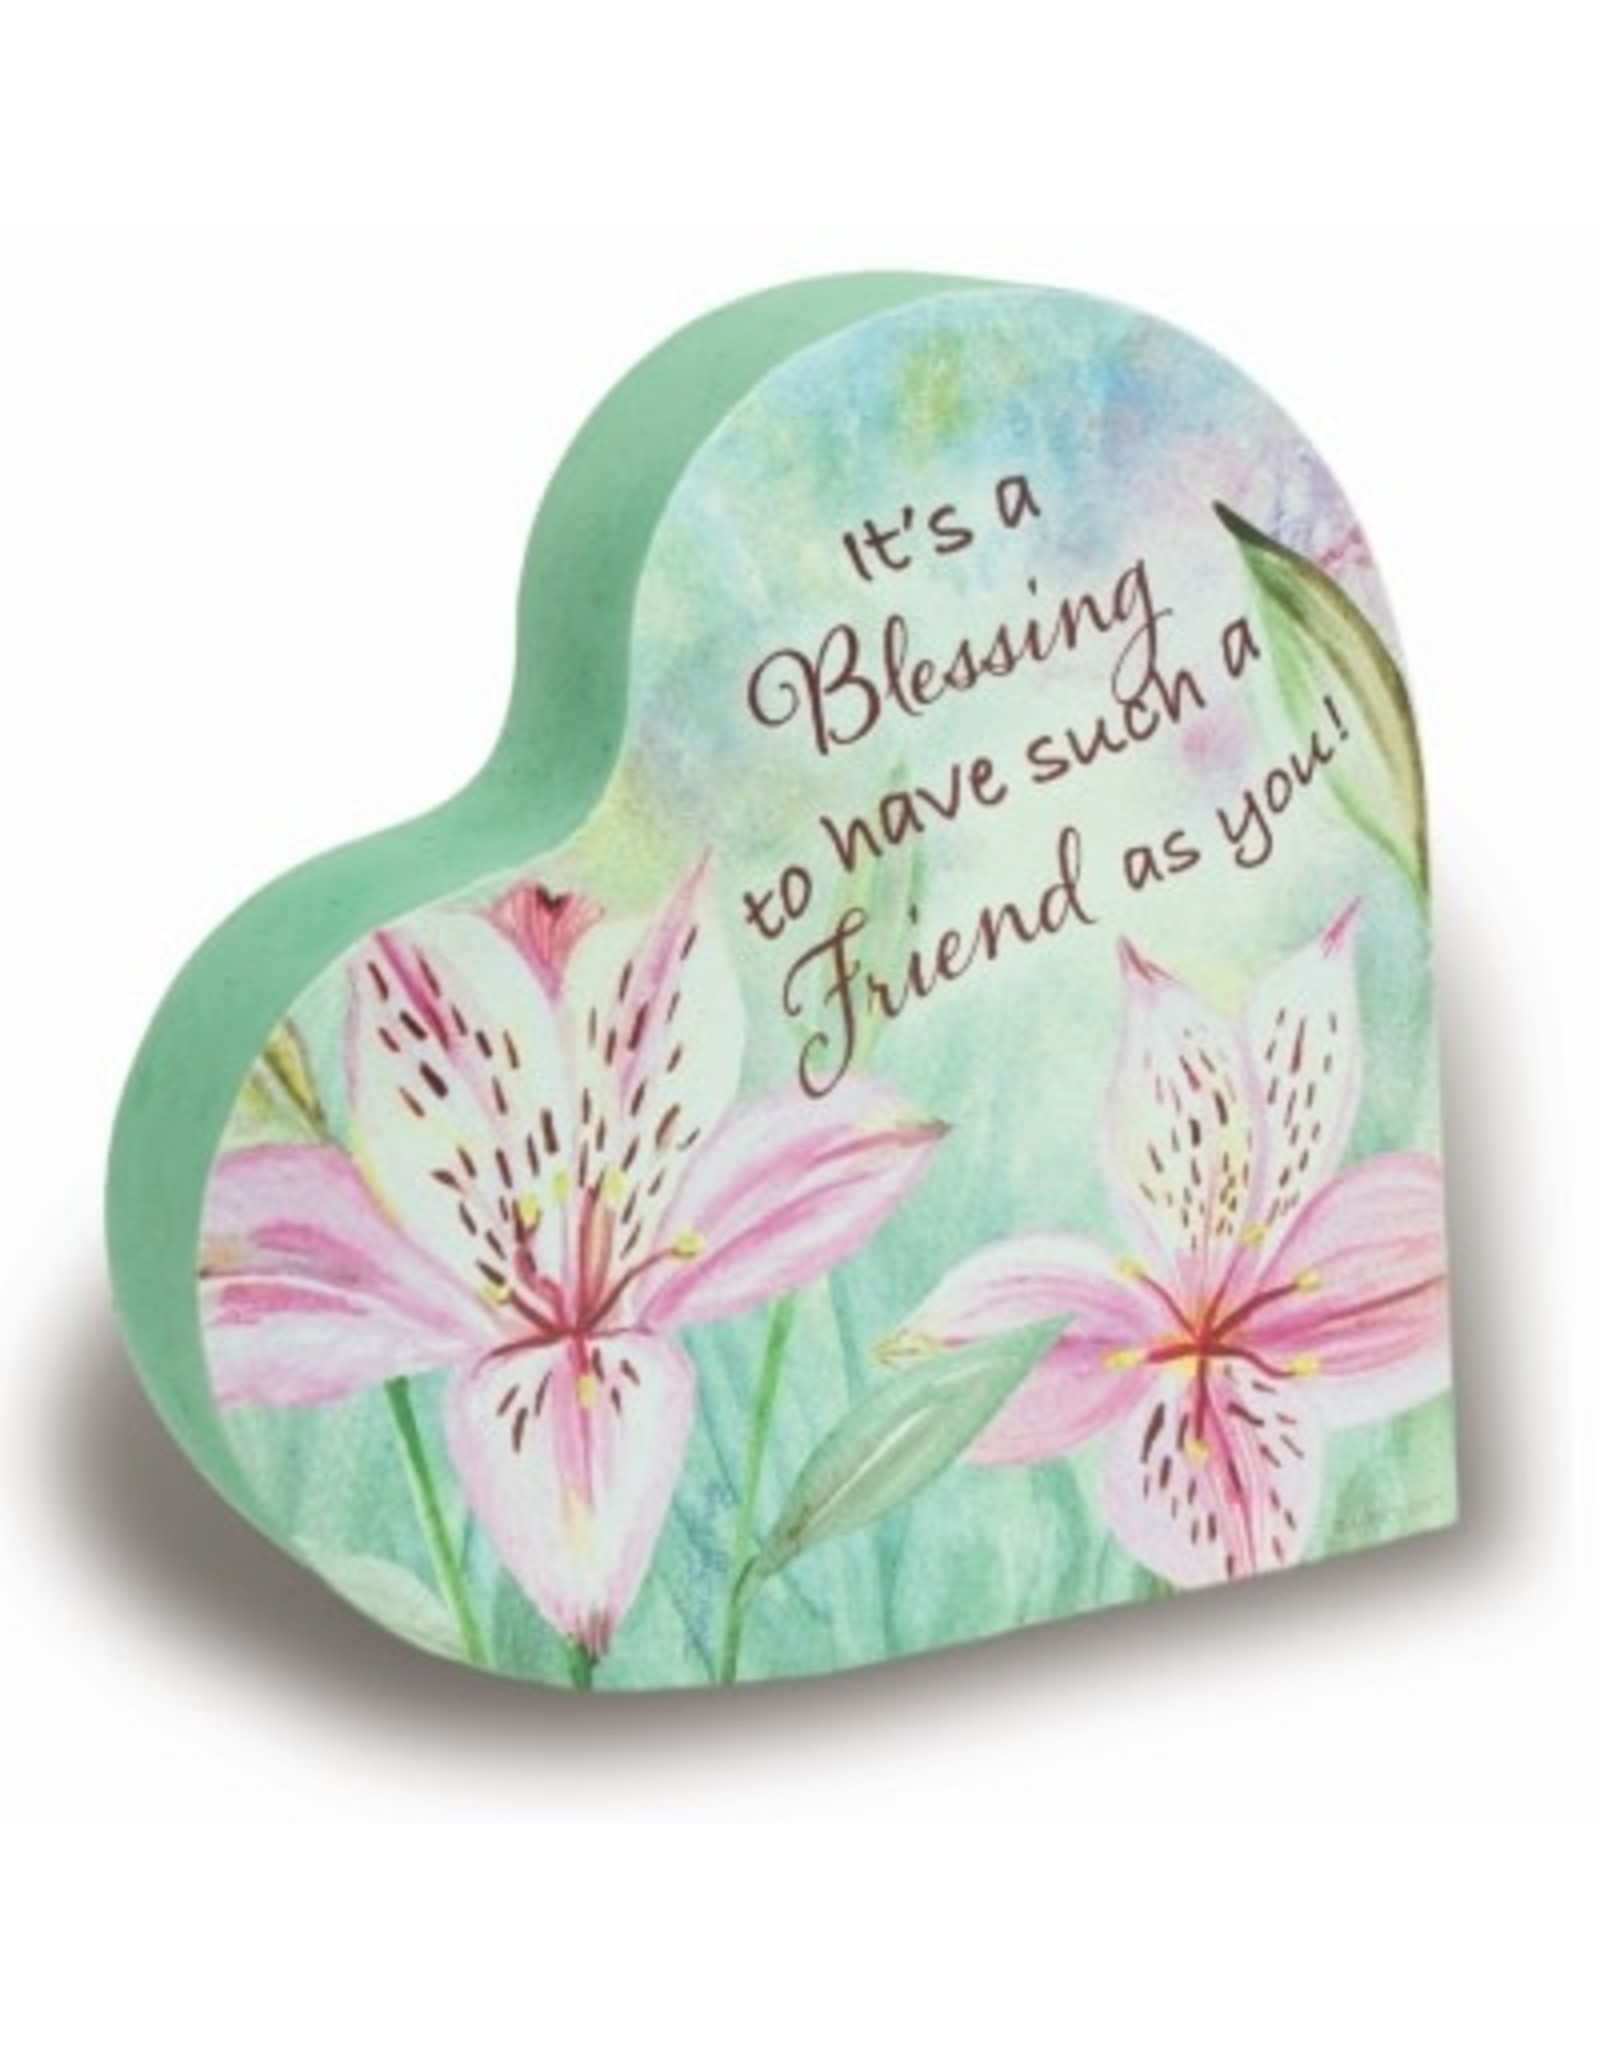 Amazing Friend 2-Sided Floral Heart Block